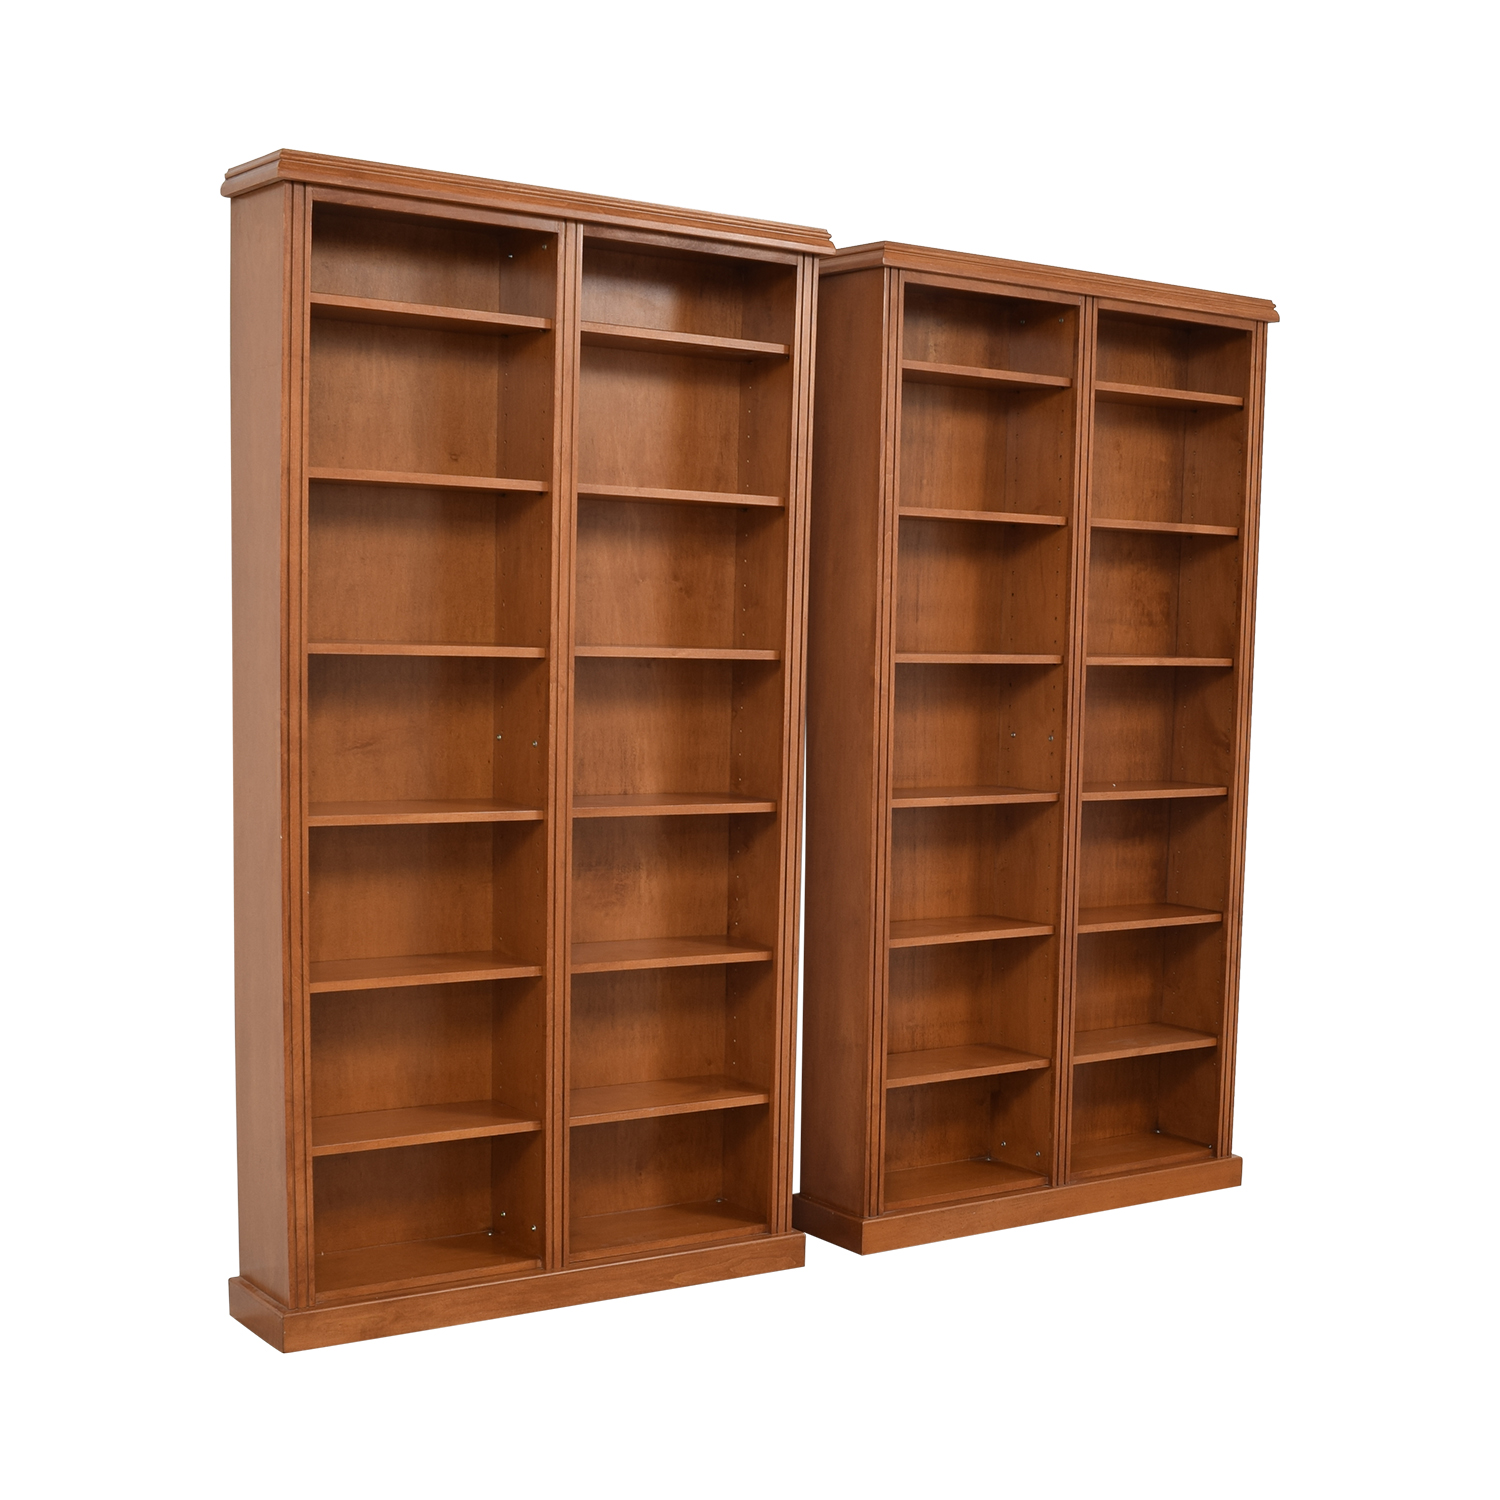 shop Gothic Cabinet Craft Bookcases Gothic Cabinet Craft Bookcases & Shelving